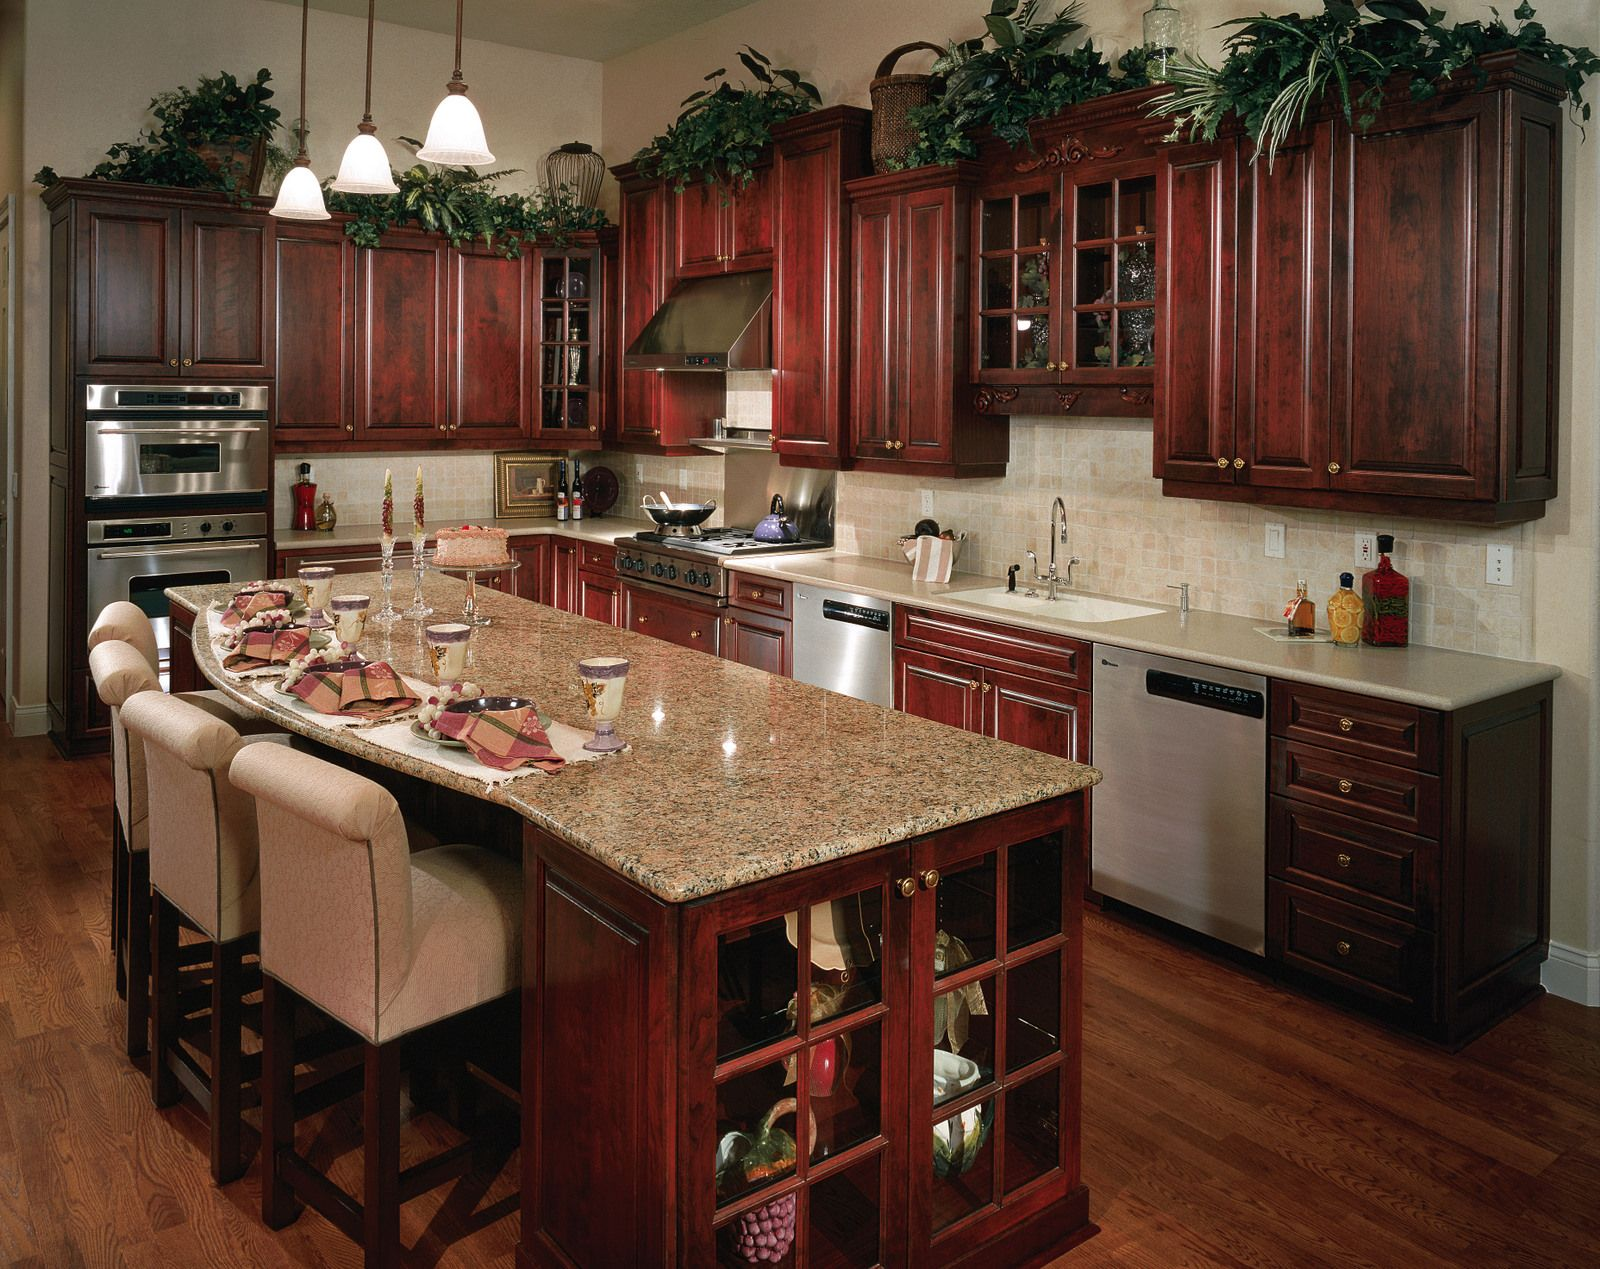 Dark Cabinets And Dark Floors Oceanside Cabinets Llc Palm Bay Wood Cabinet Kitchen Design